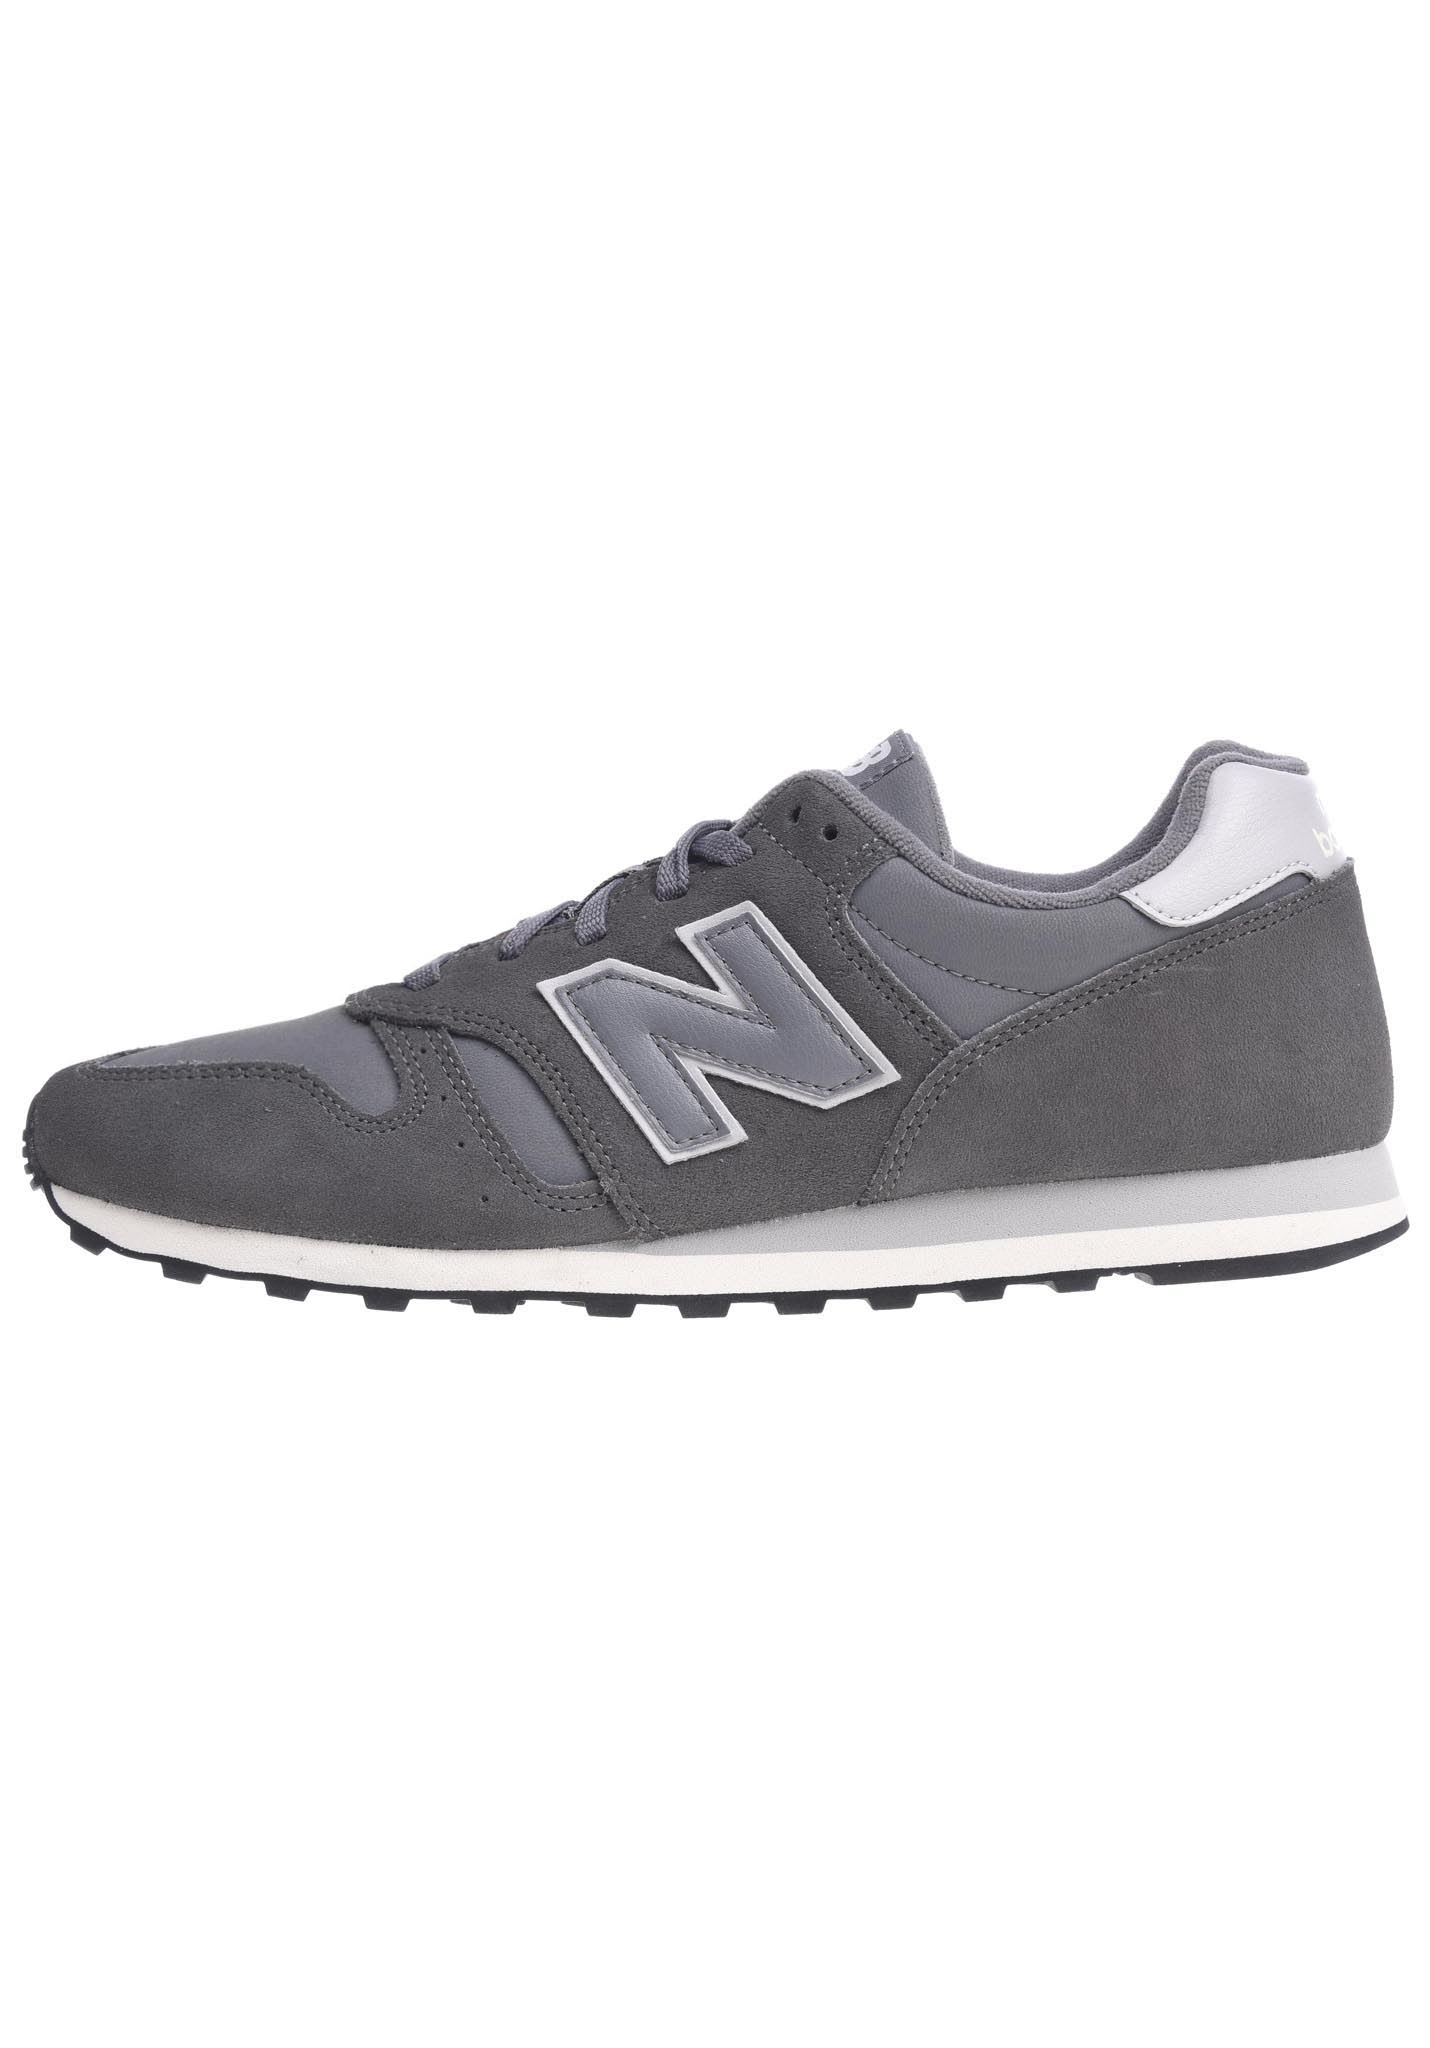 Balance New Planet Ml373 Pour Homme Baskets D Sports Gris HRRdq